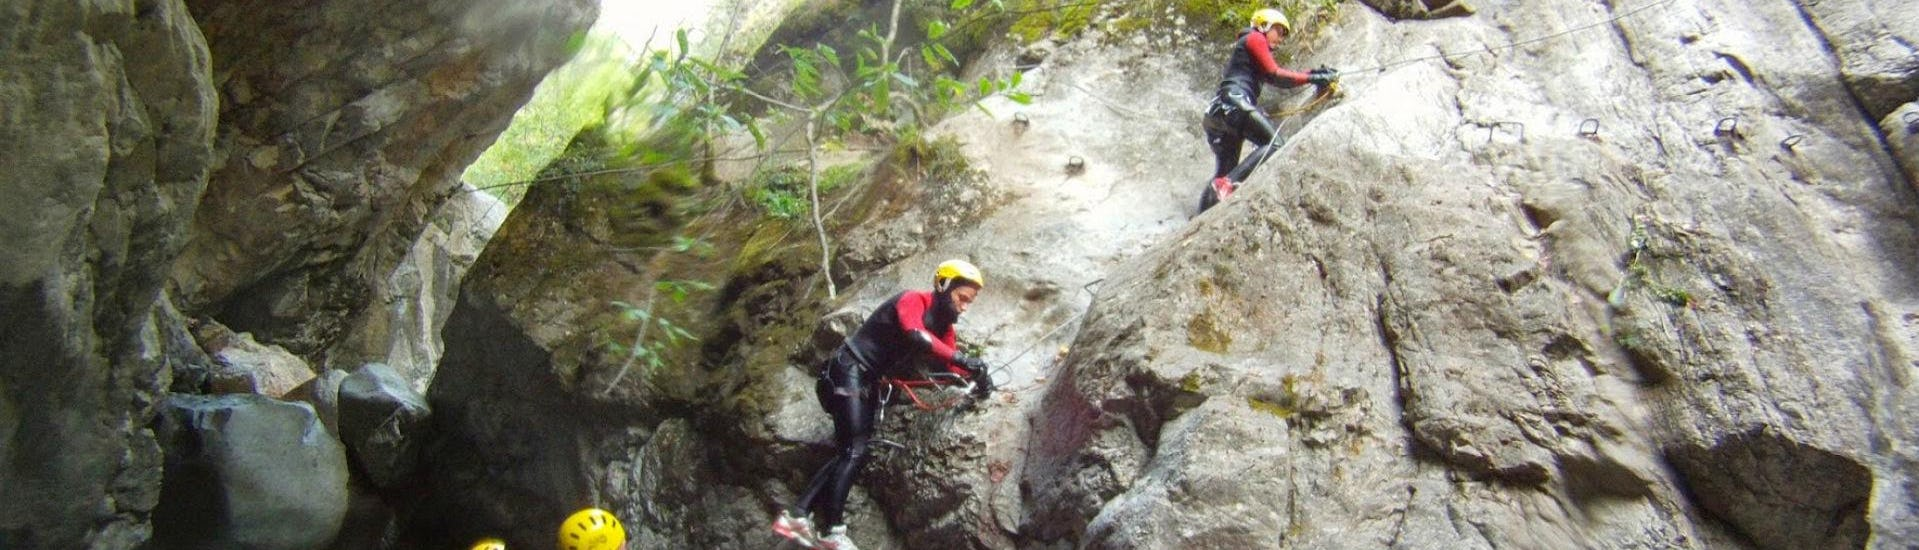 Groupe en excursion canyoning